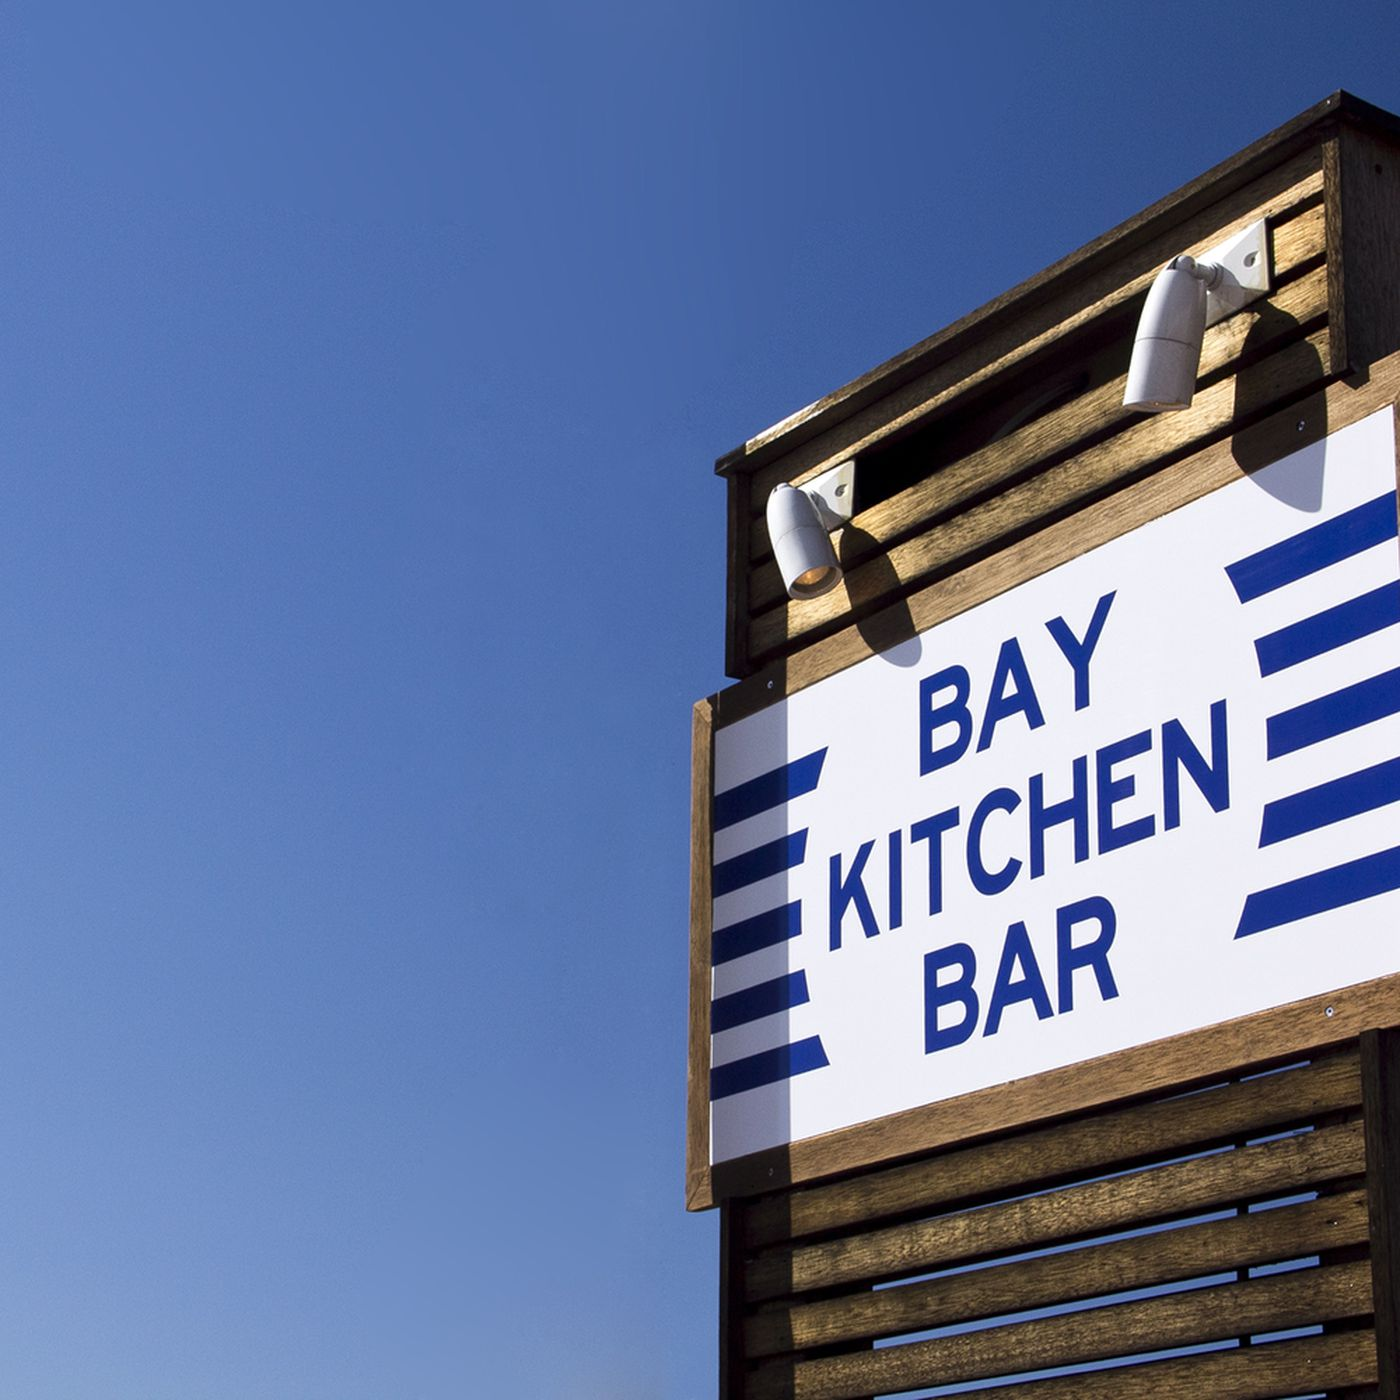 Hamptons hit bay kitchen bar plans to bring its seafood to the upper east side eater ny